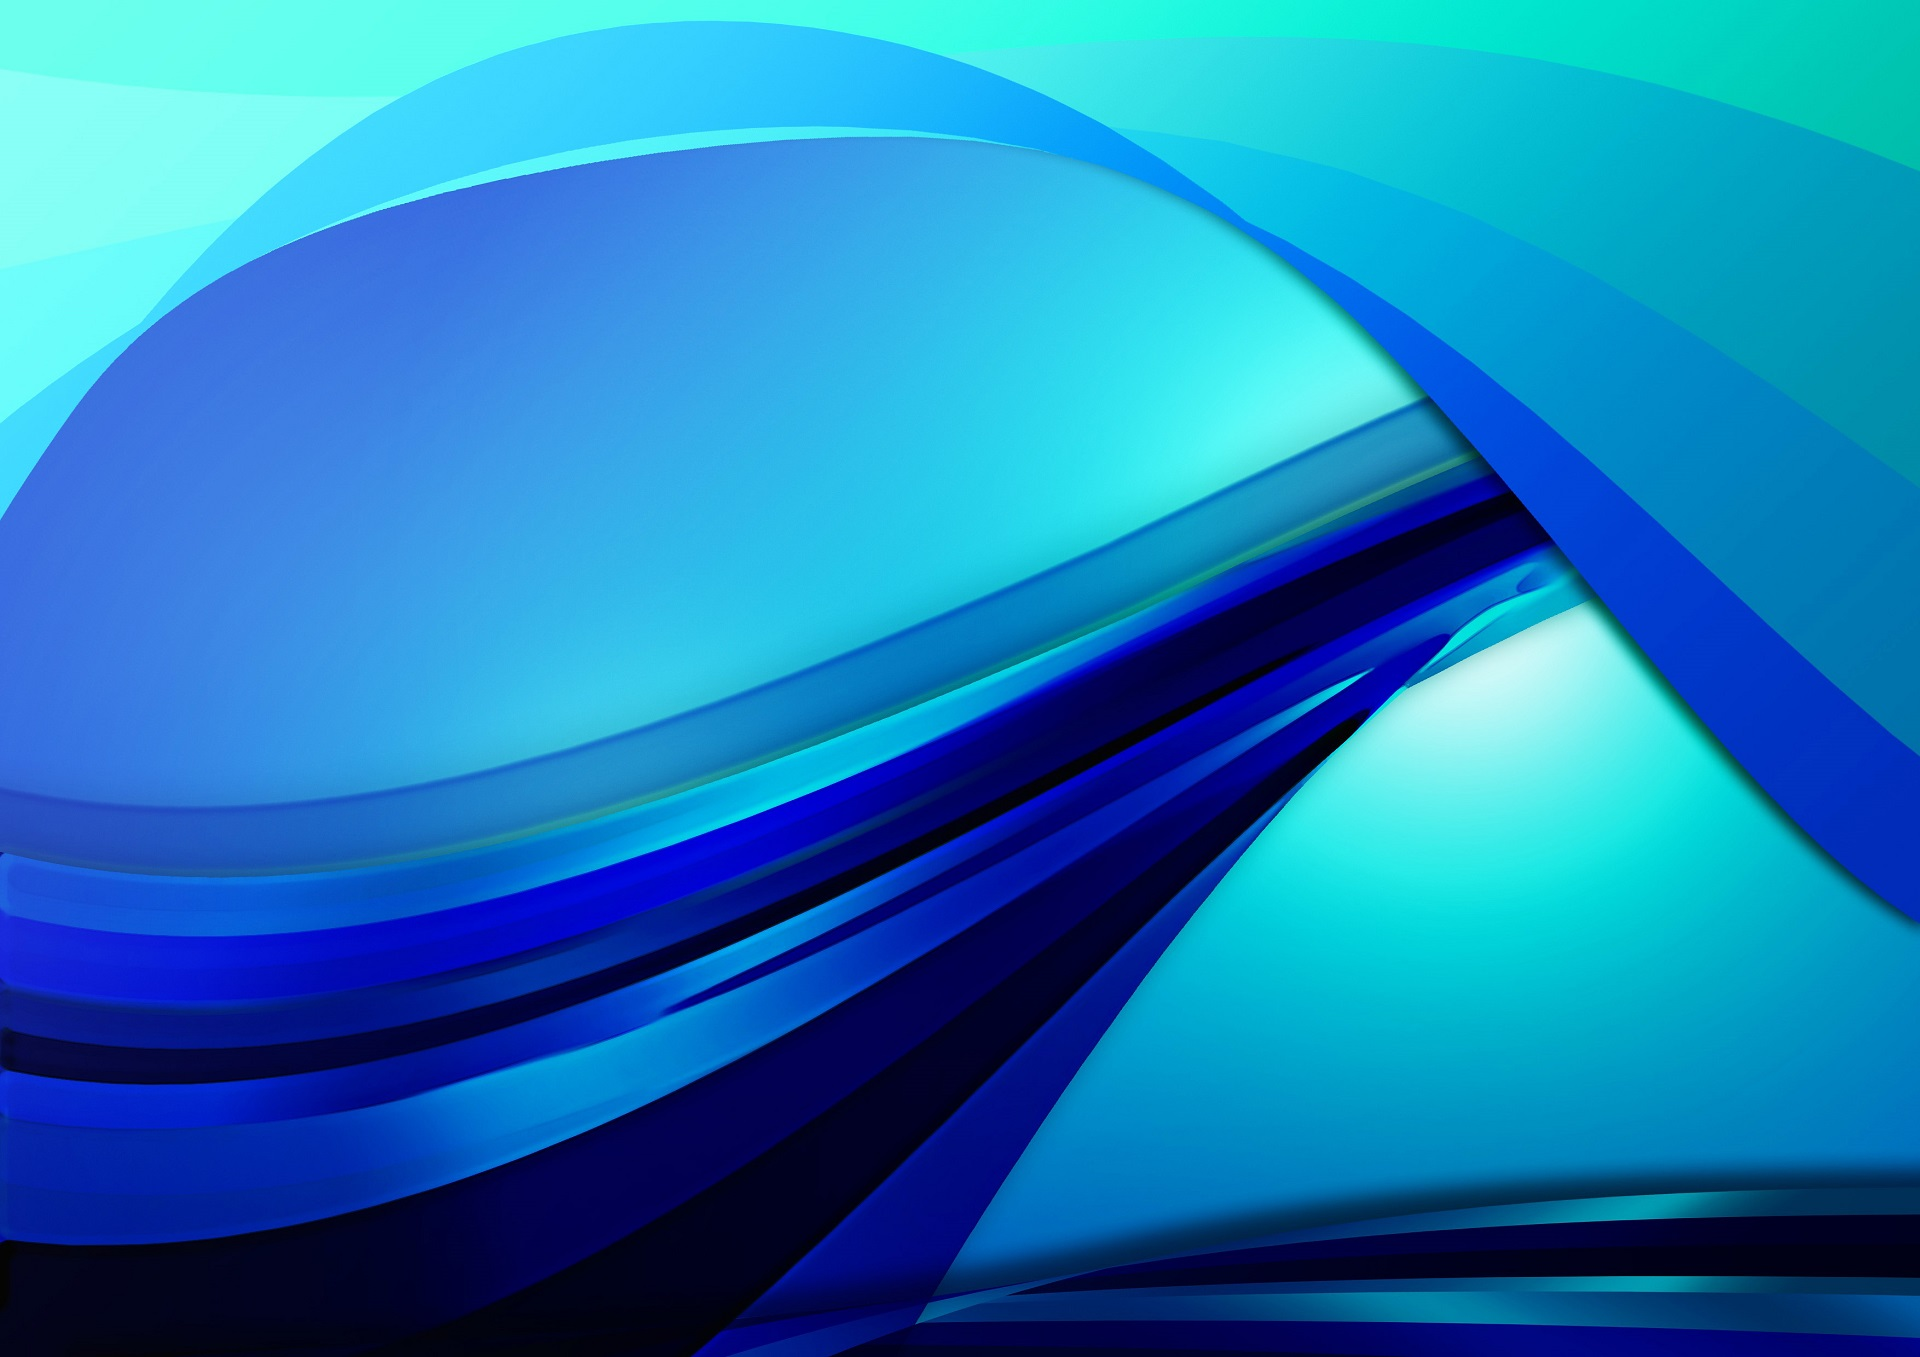 8d4a8c47464c Blue Swirl Wallpaper 46 Best HD Backgrounds of Blue Swirl 1920x1357